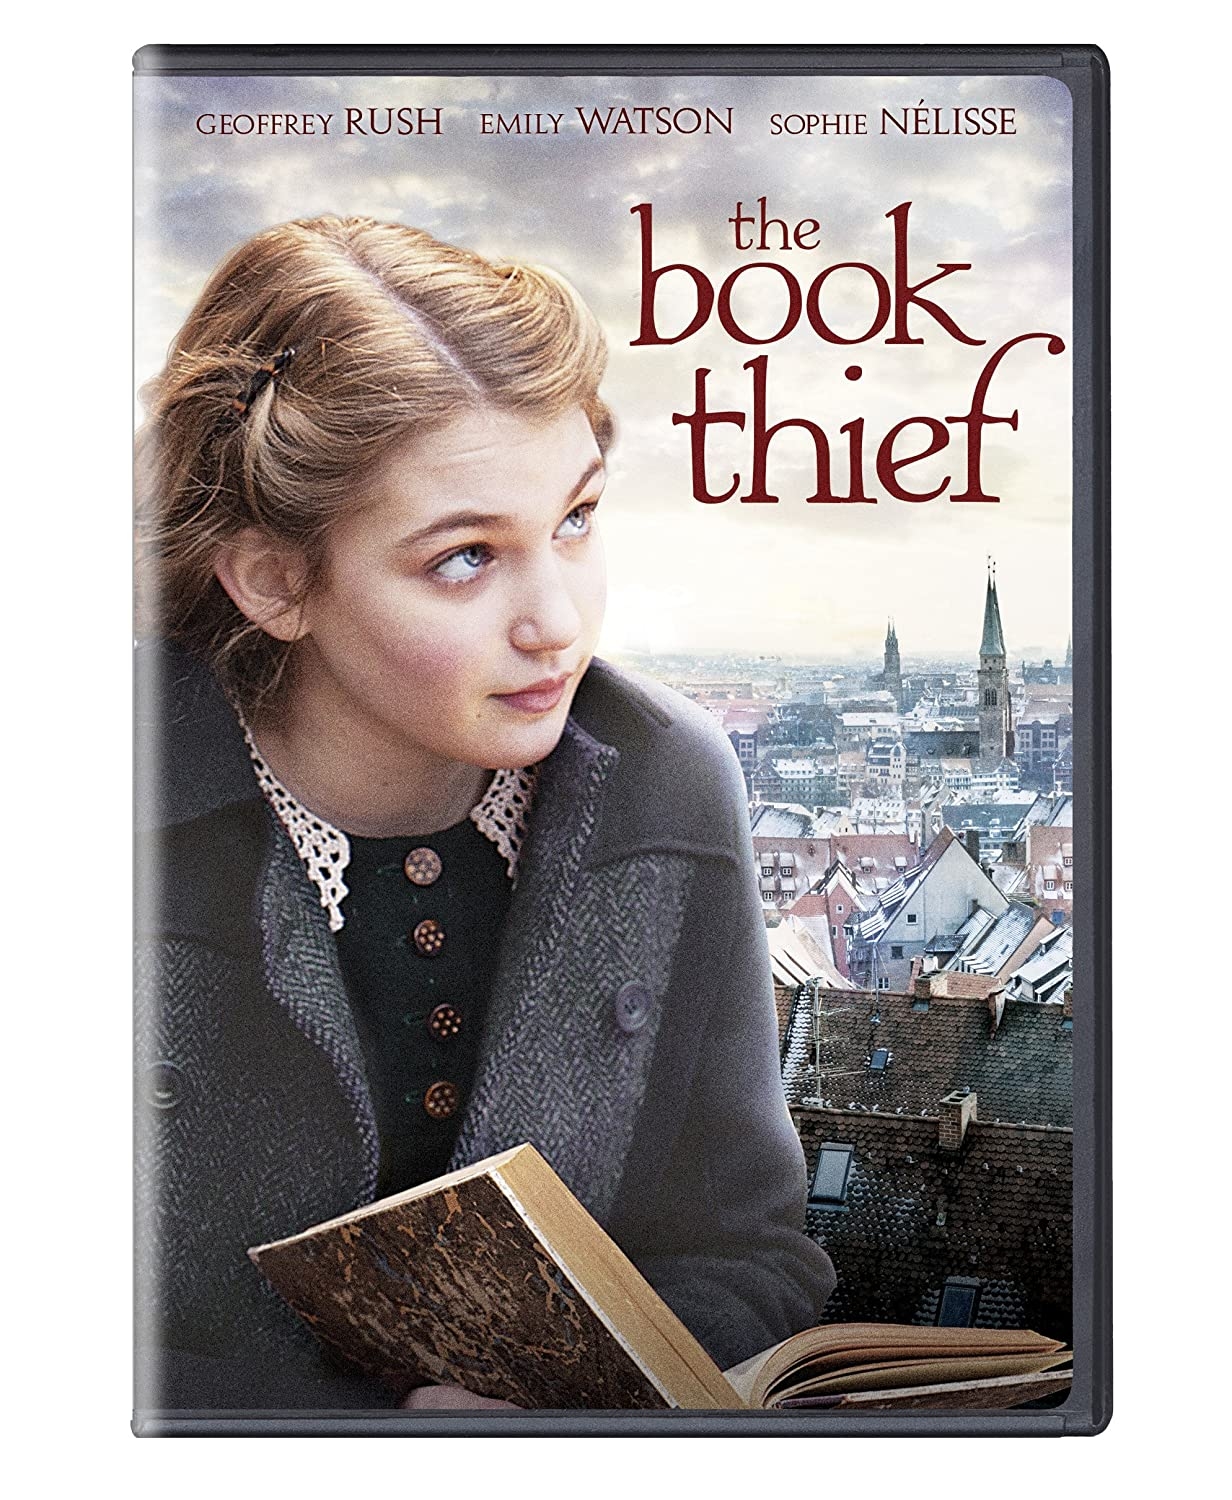 amazon com the book thief sophie nelisse emily watson geoffrey  amazon com the book thief sophie nelisse emily watson geoffrey rush brian percival movies tv